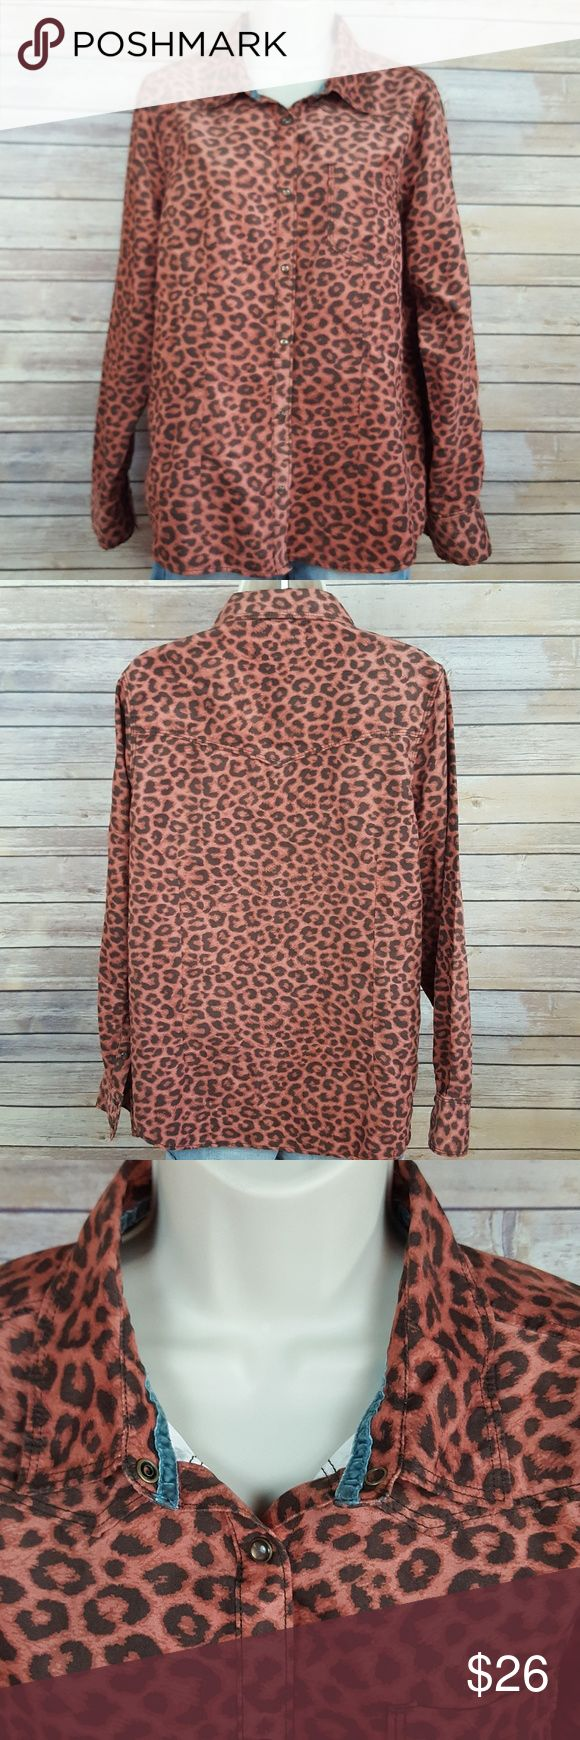 "Legacy Falls rust brown cheetah print Legacy Falls, size Large,  100% polyester brushed suede feel,  long sleeve with snap buttons and a western front and back yoke, had a denim strip around neckline, measurements are... 22"" bust,  24"" sleeve length. Legacy Falls Tops"